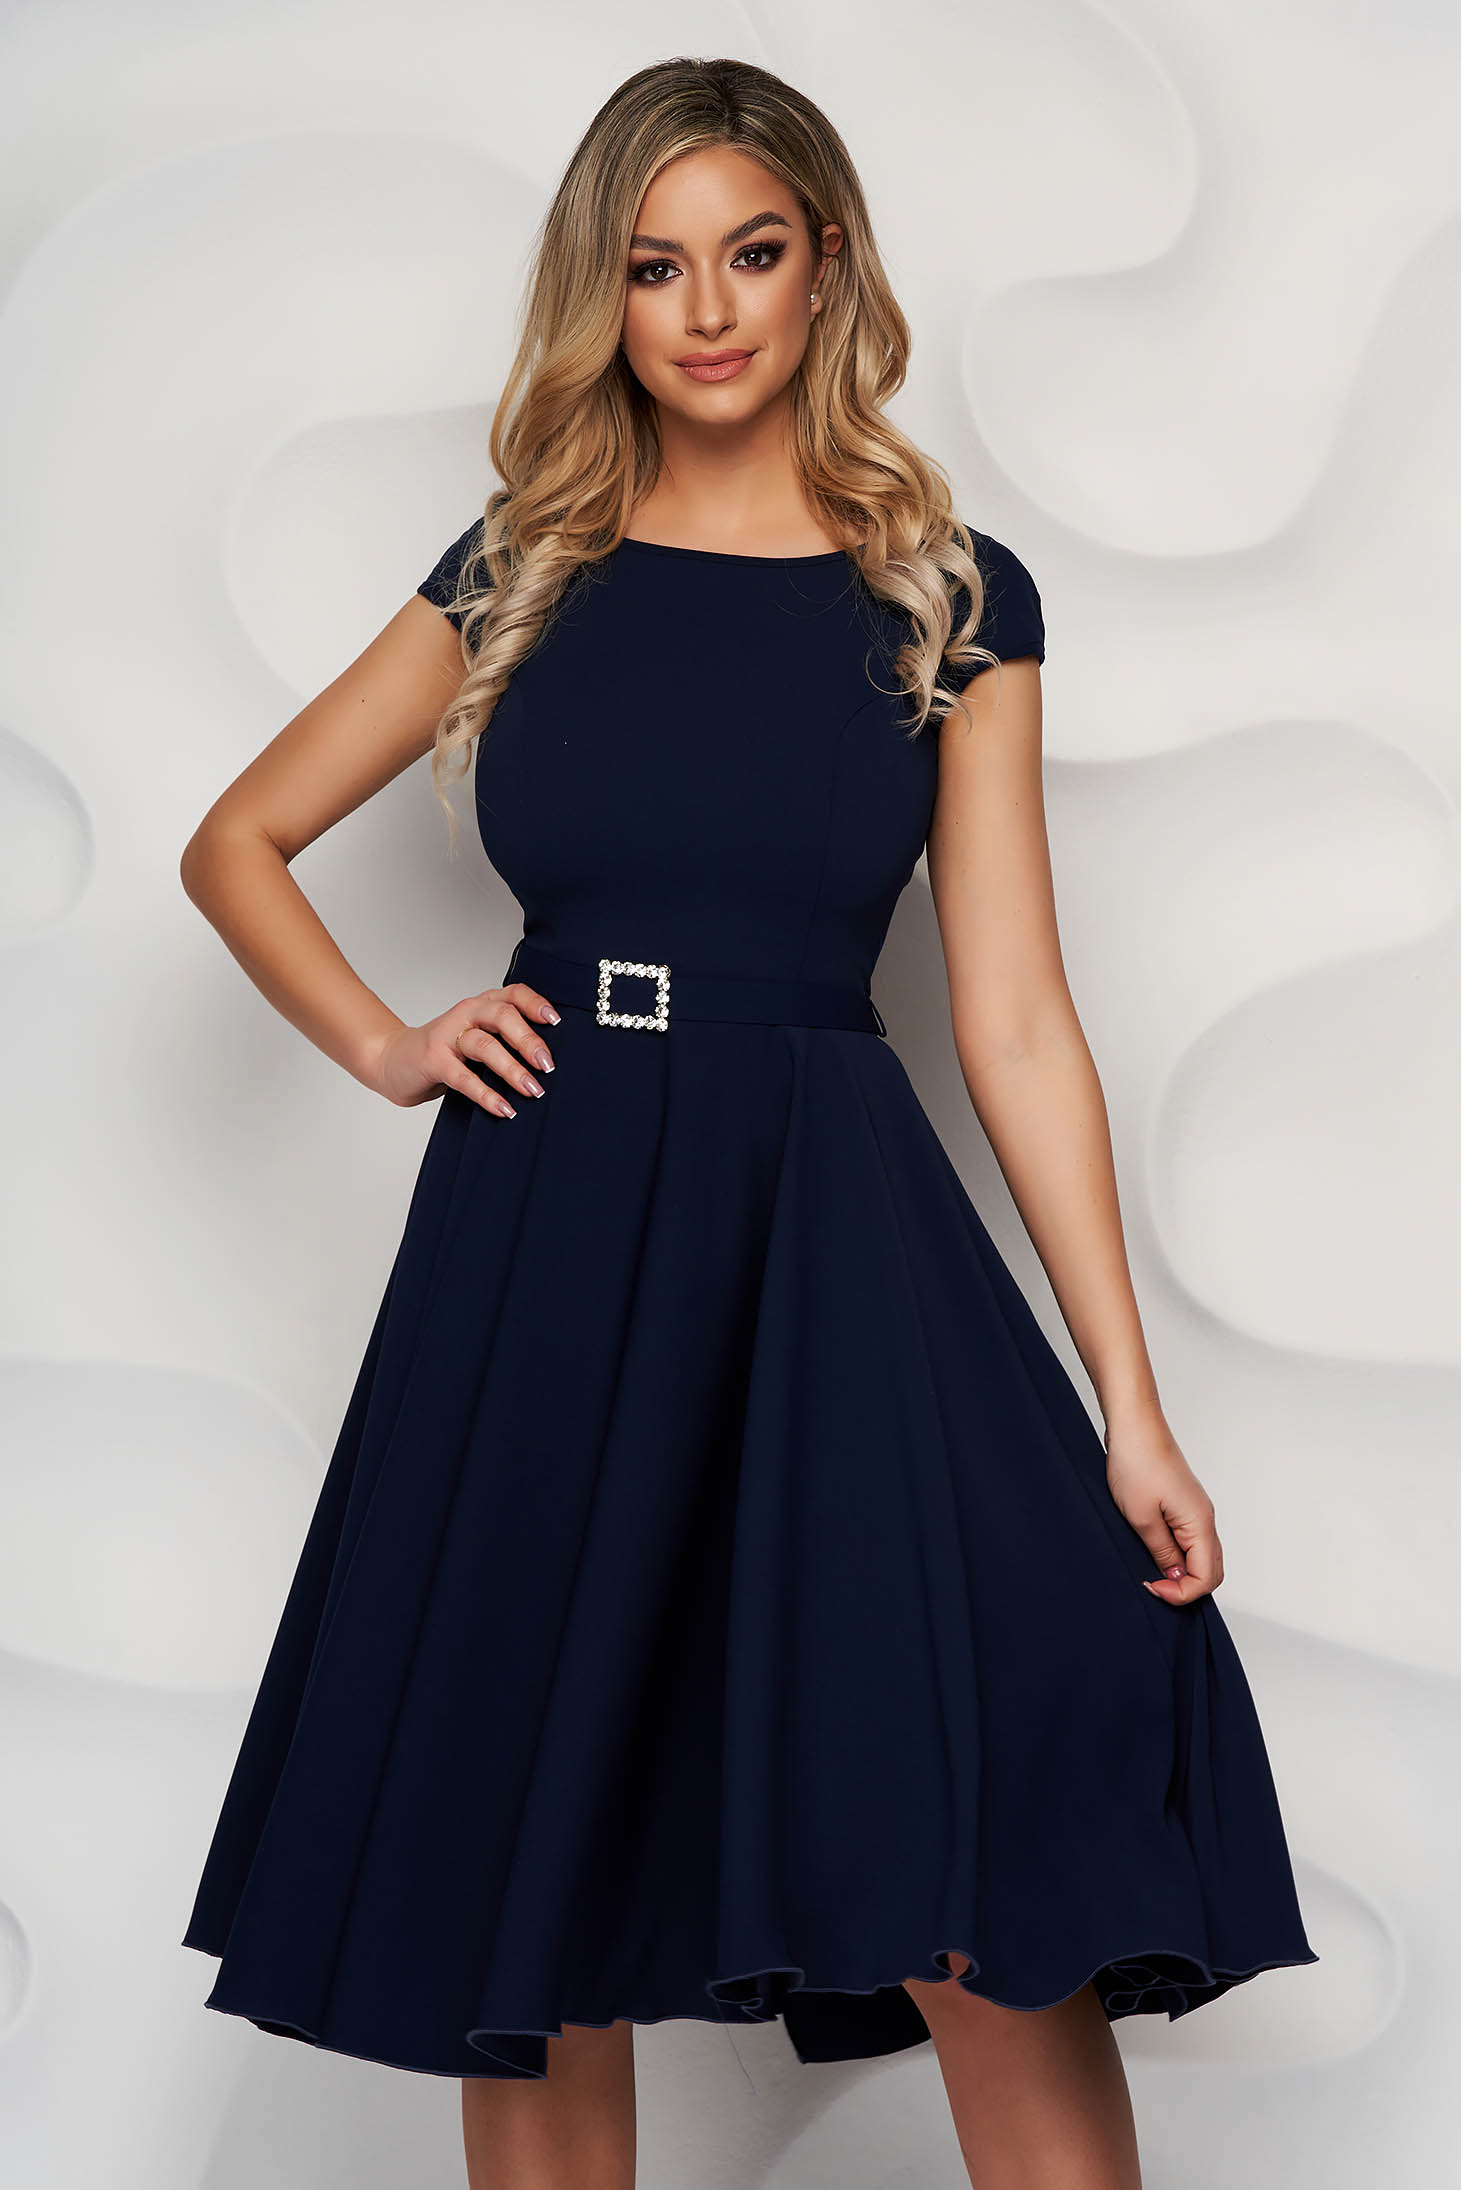 StarShinerS darkblue dress elegant midi cloth accessorized with a waistband